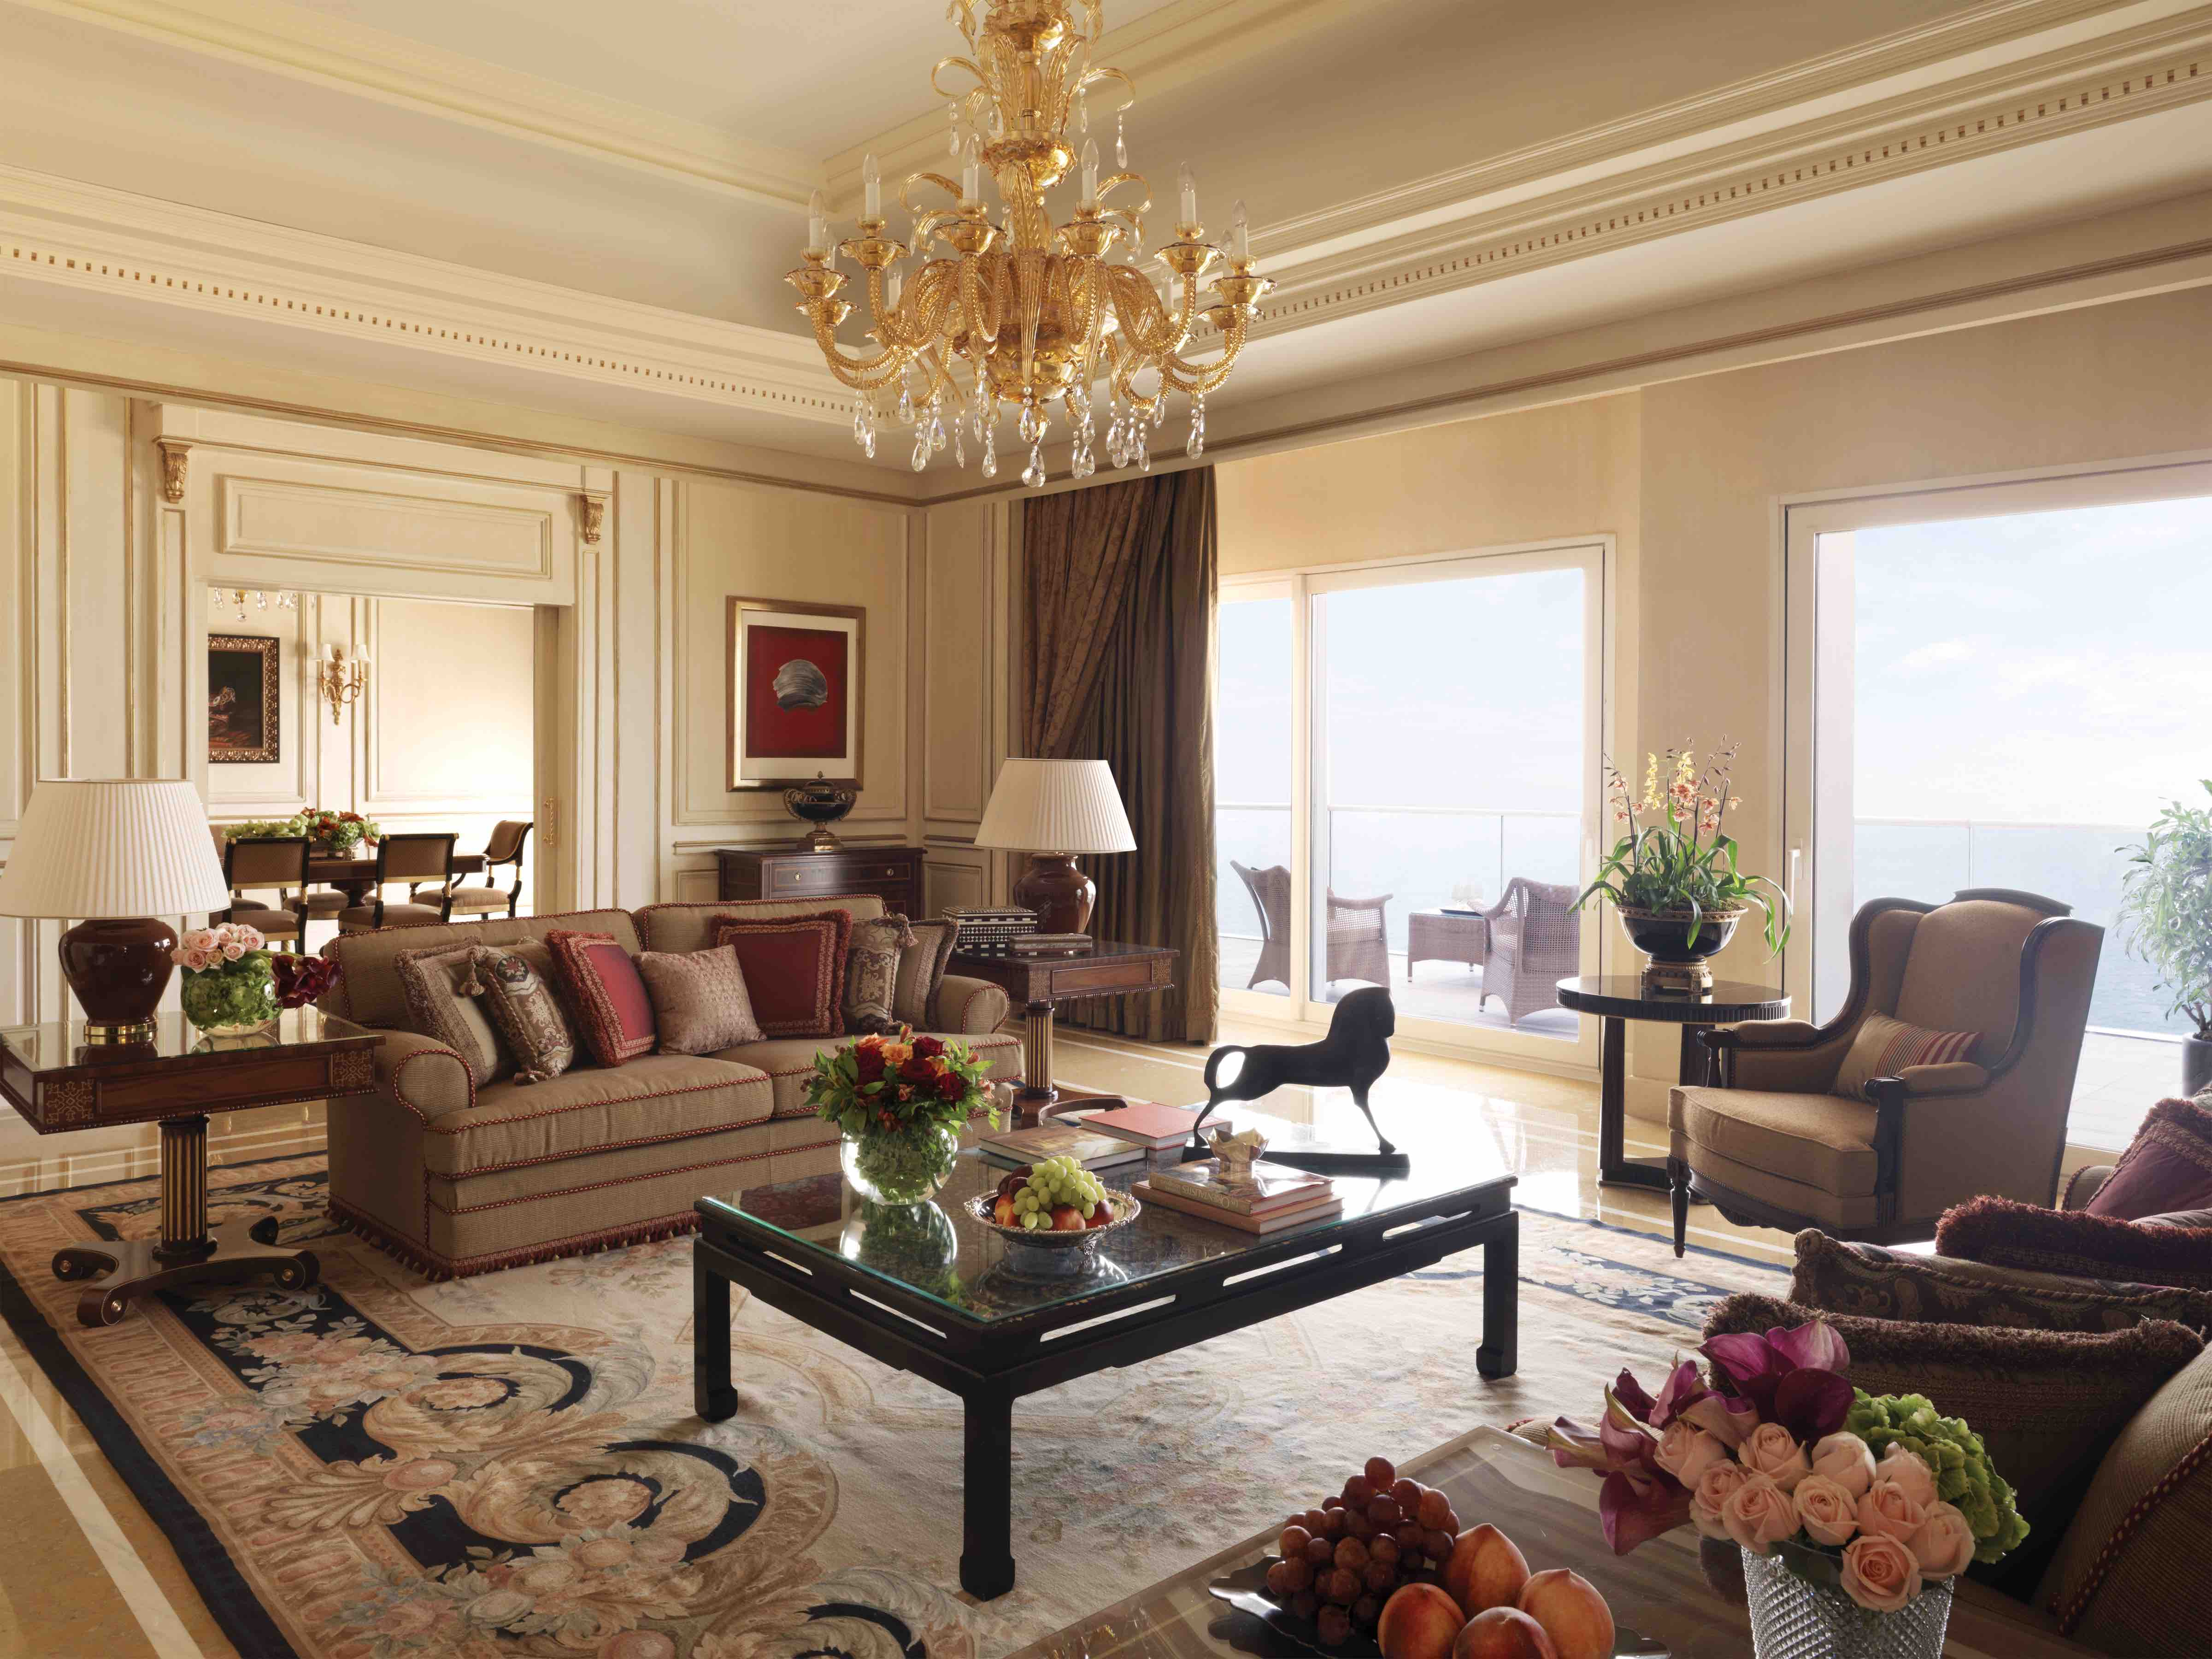 Pure Luxury within the Royal Suite. Photographer: Thuysbaert, Paul © Four Seasons